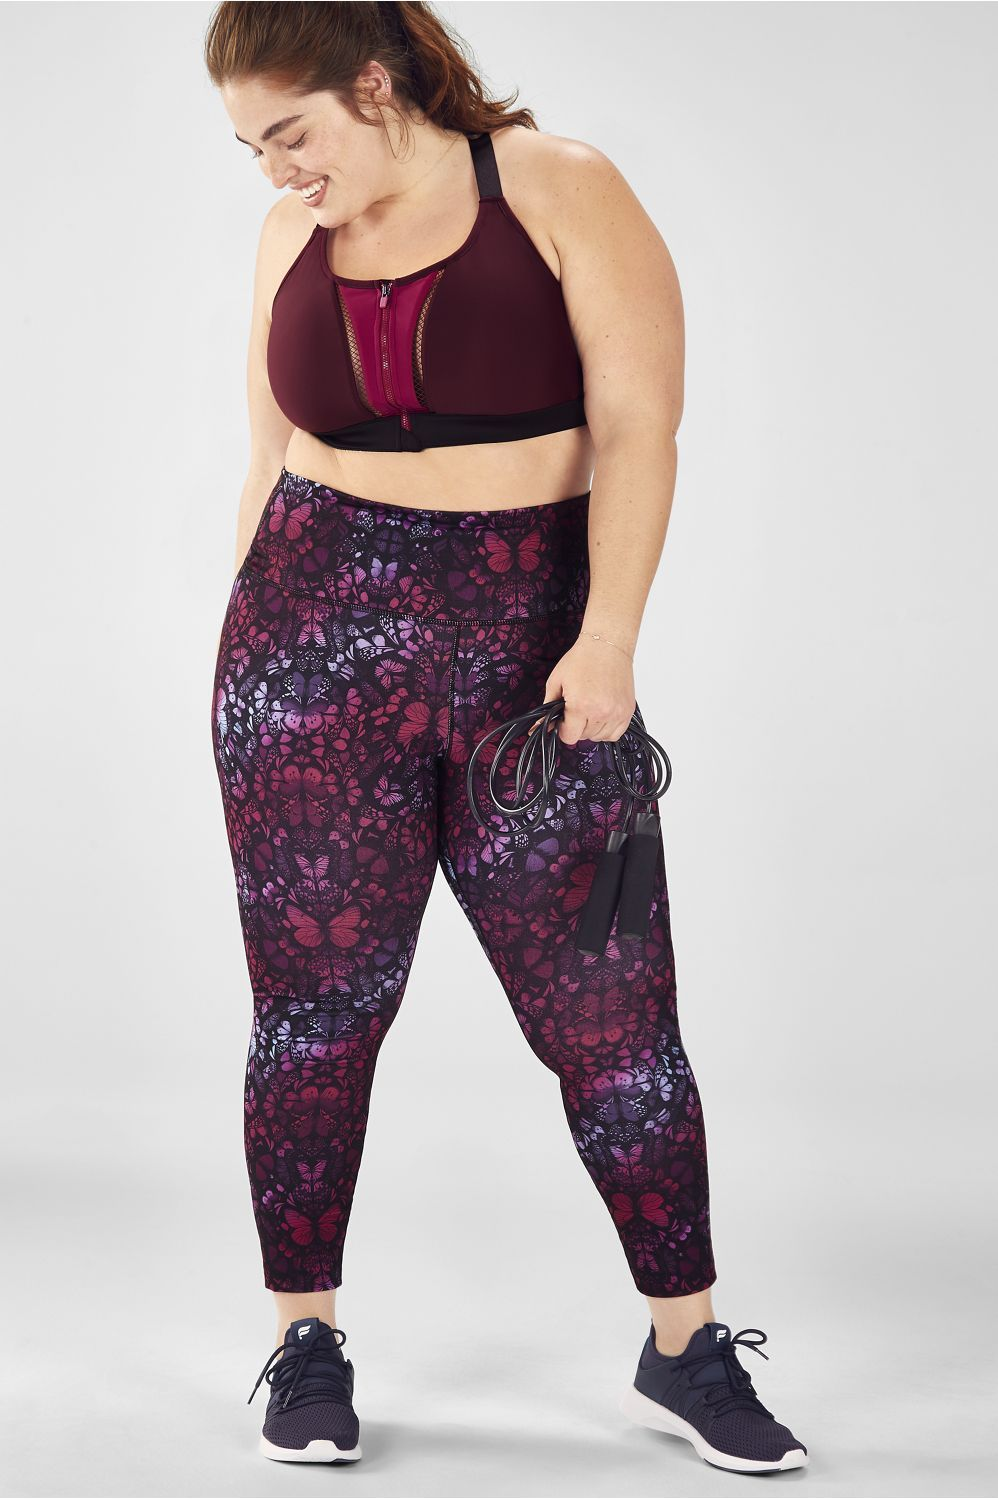 d01a03033 Looking for where you can find some of the best in plus size active wear   We have found some of the best plus size workout clothing options!